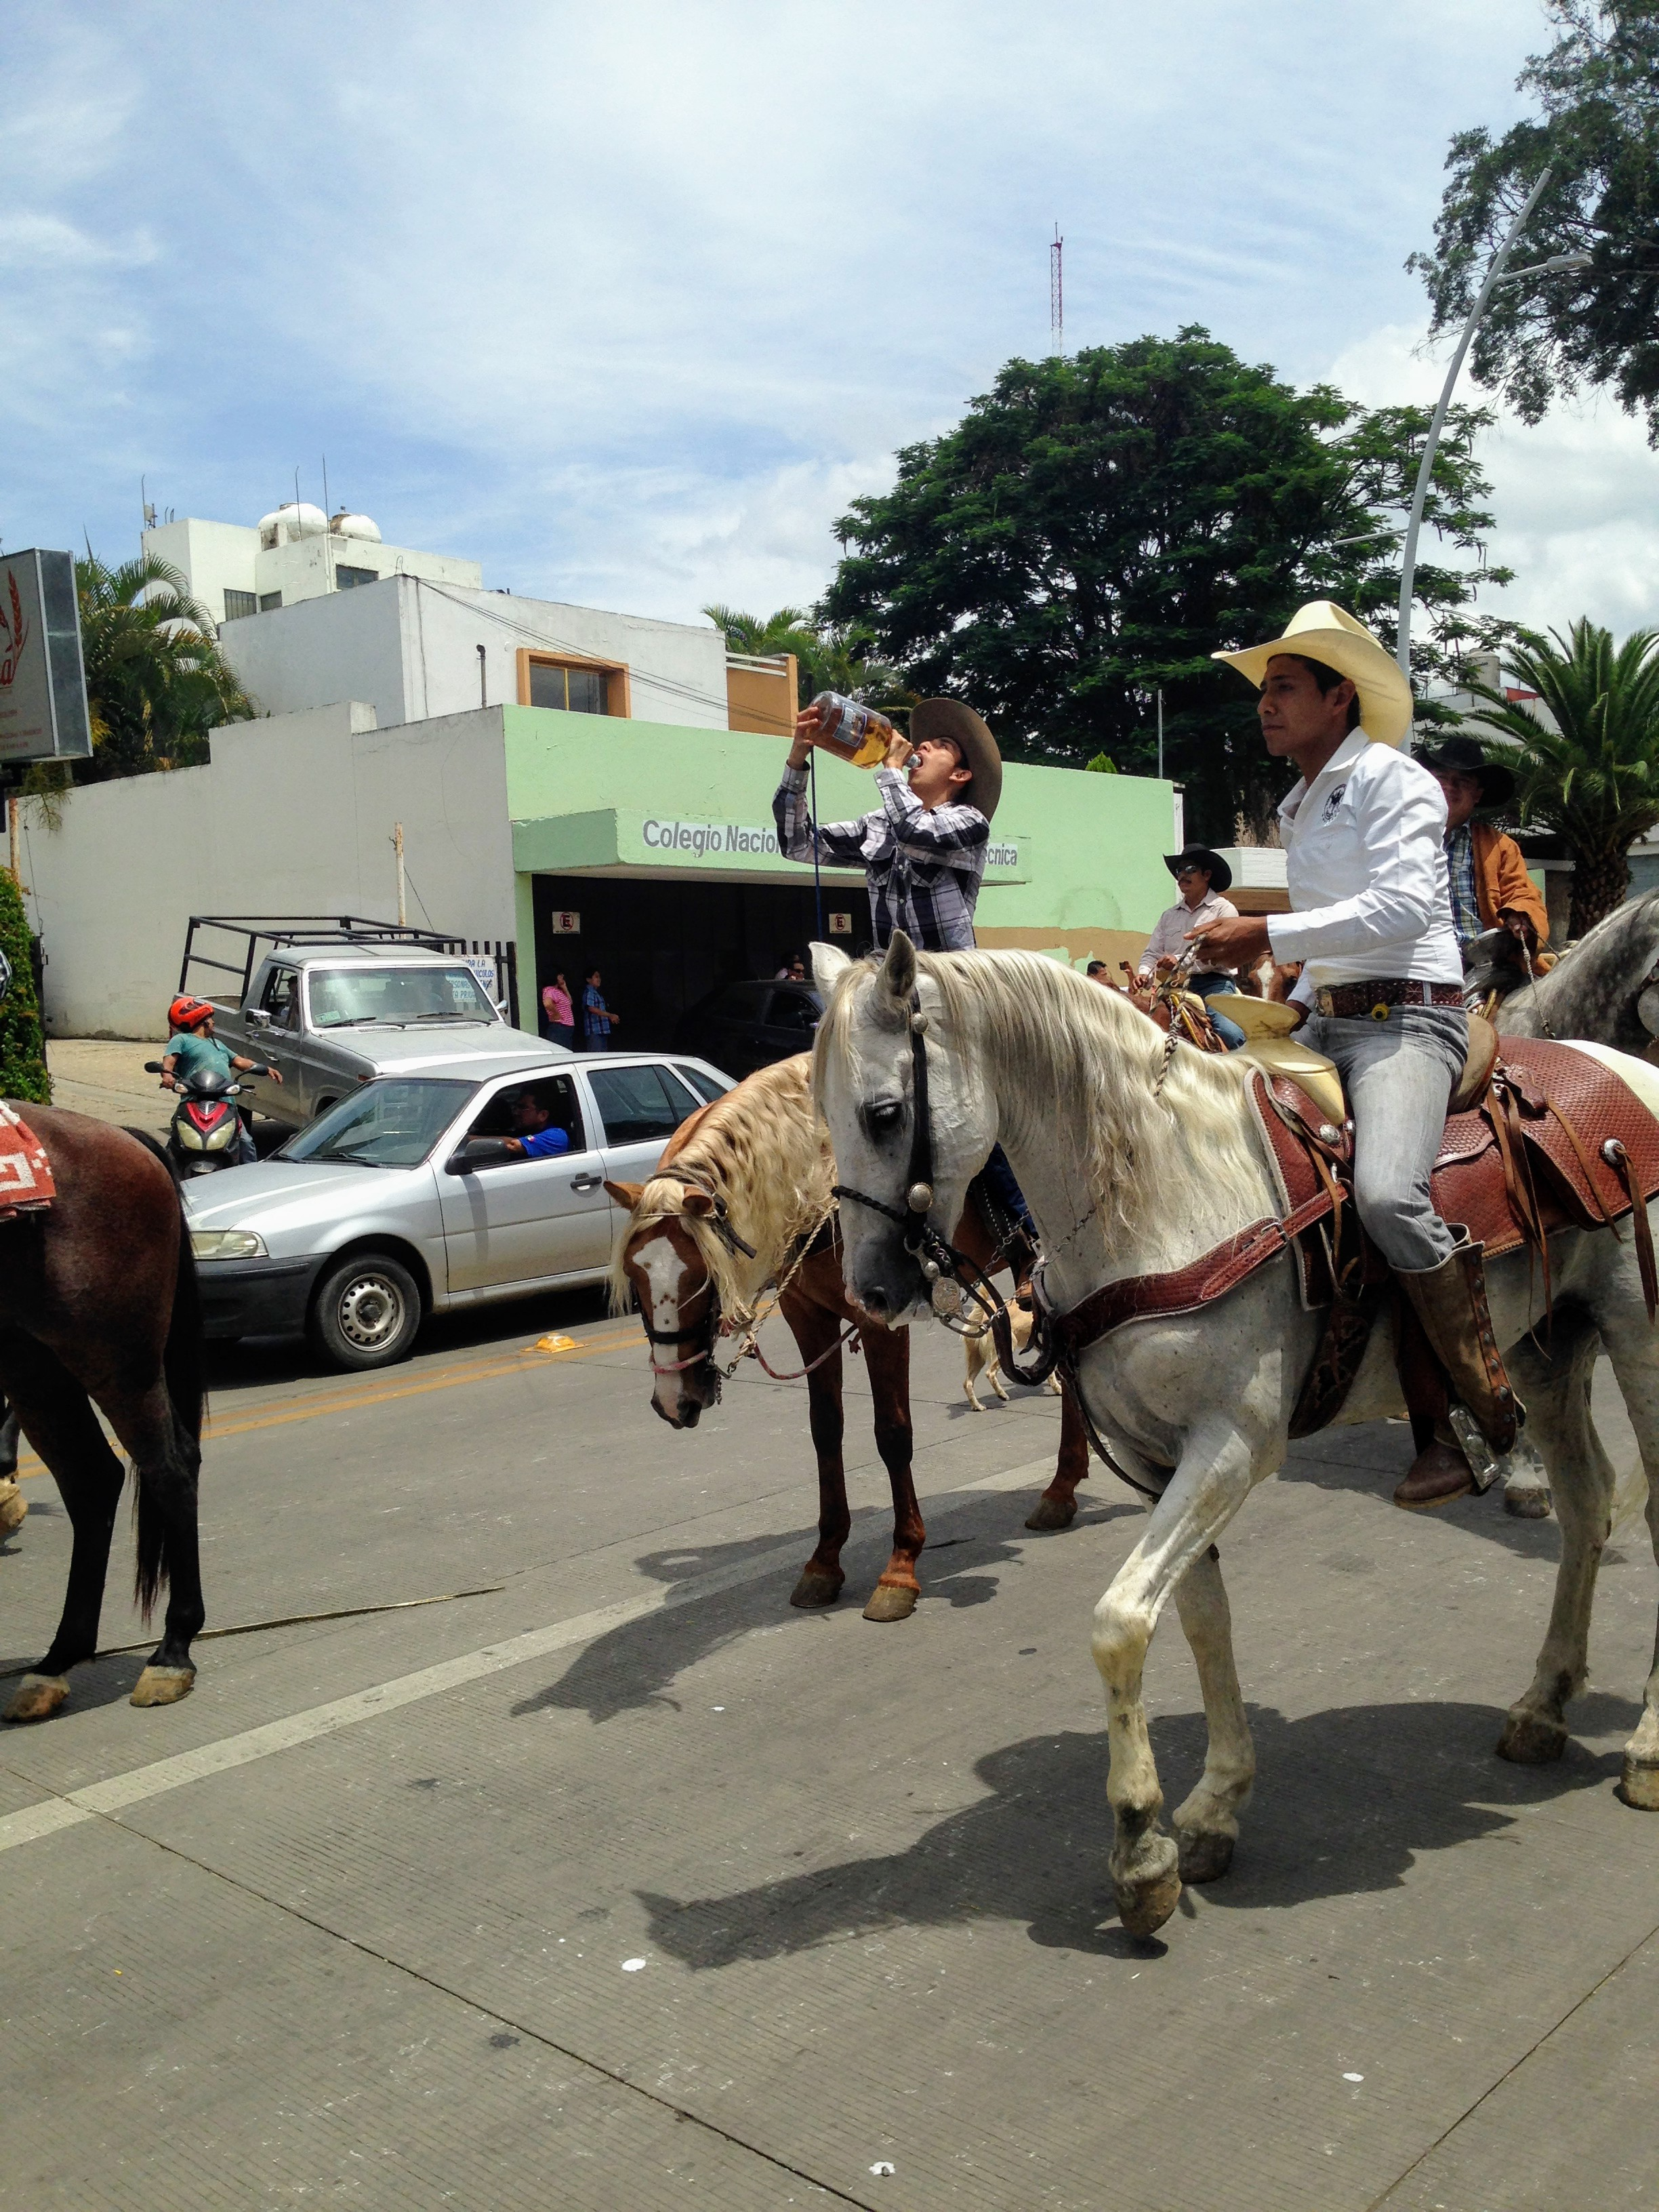 Cowboys and Girls Parade, Calzada Porfirio Díaz, Reforma